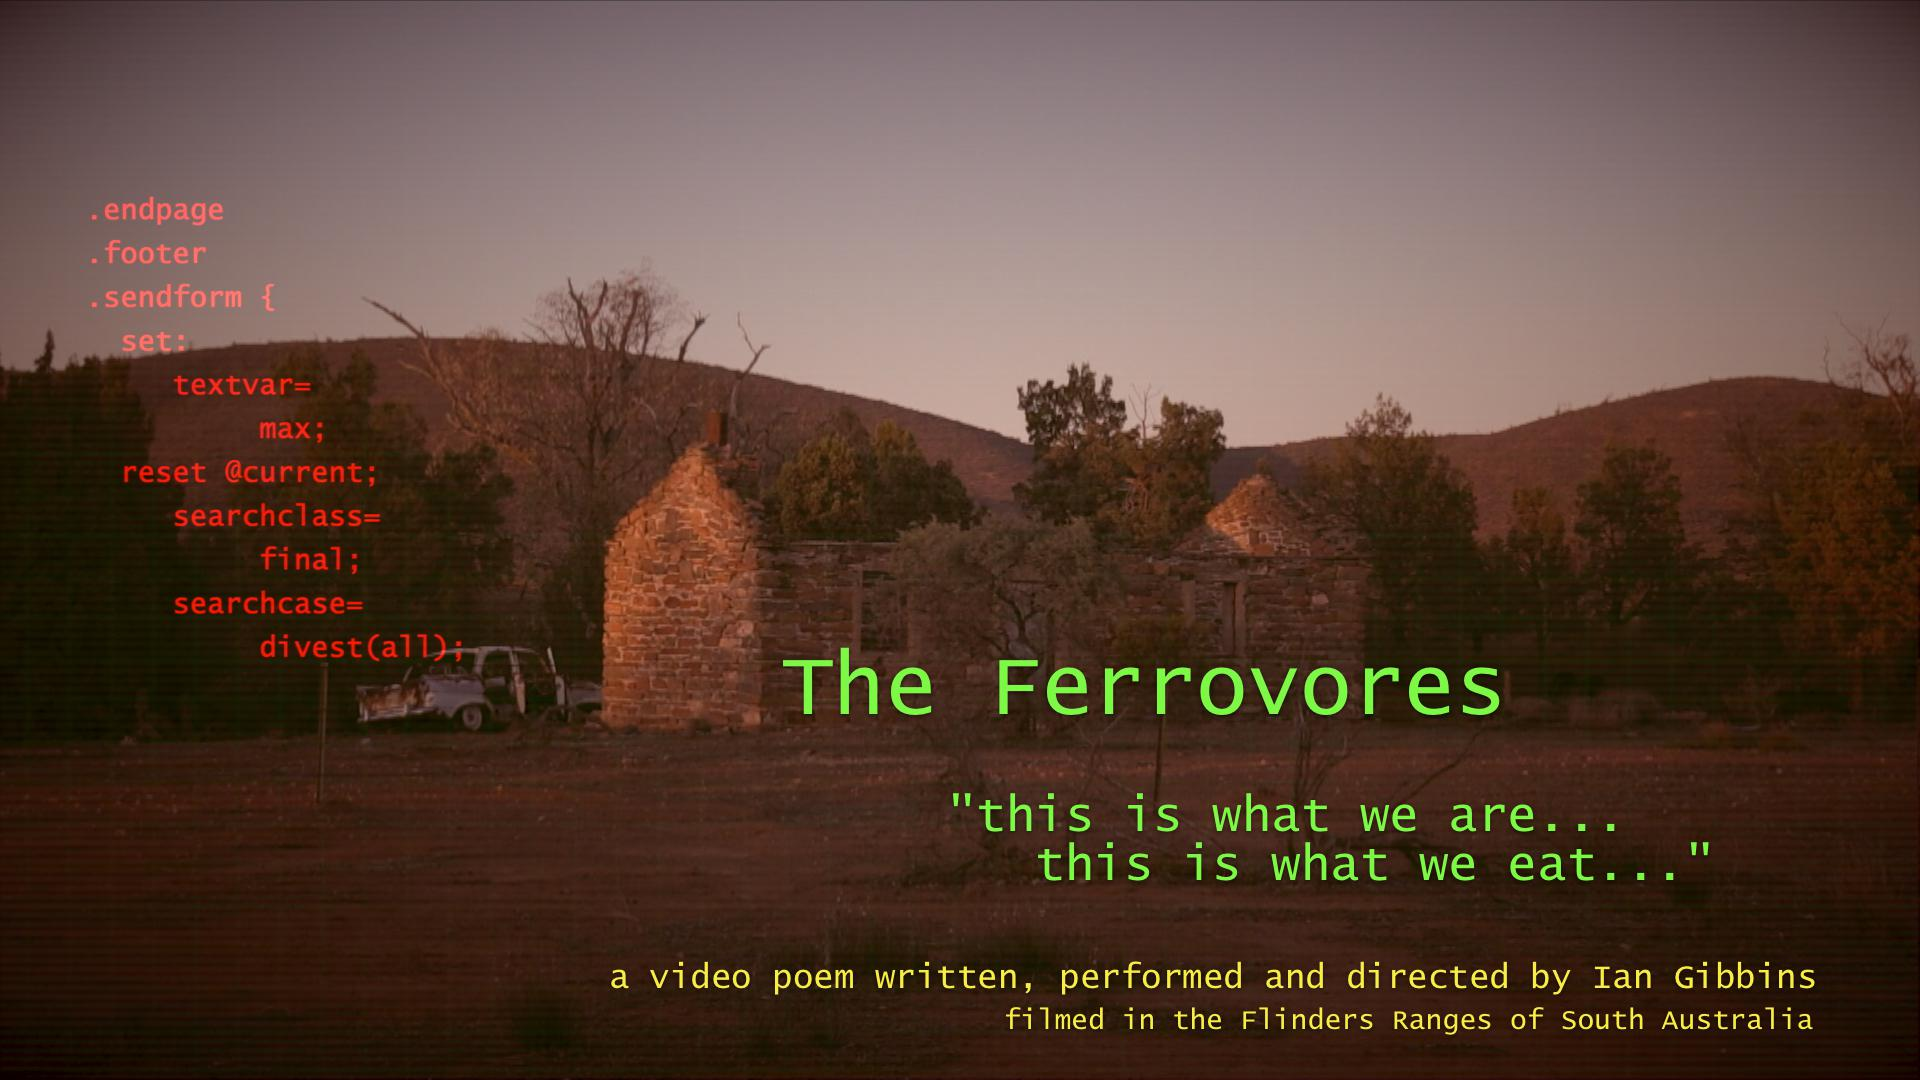 The Ferrovores